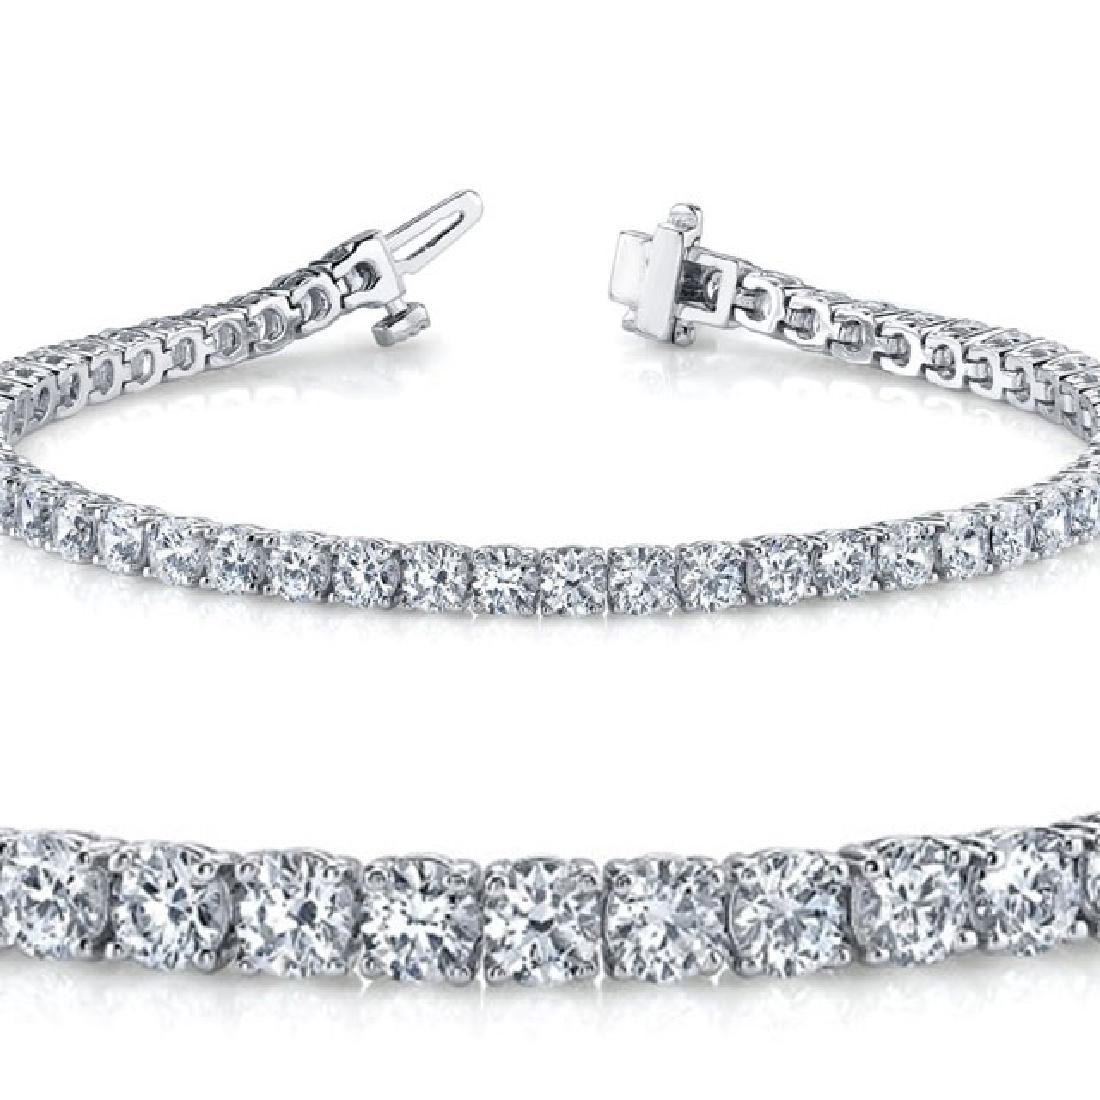 Natural 5.04ct VS-SI Diamond Tennis Bracelet Platinum -